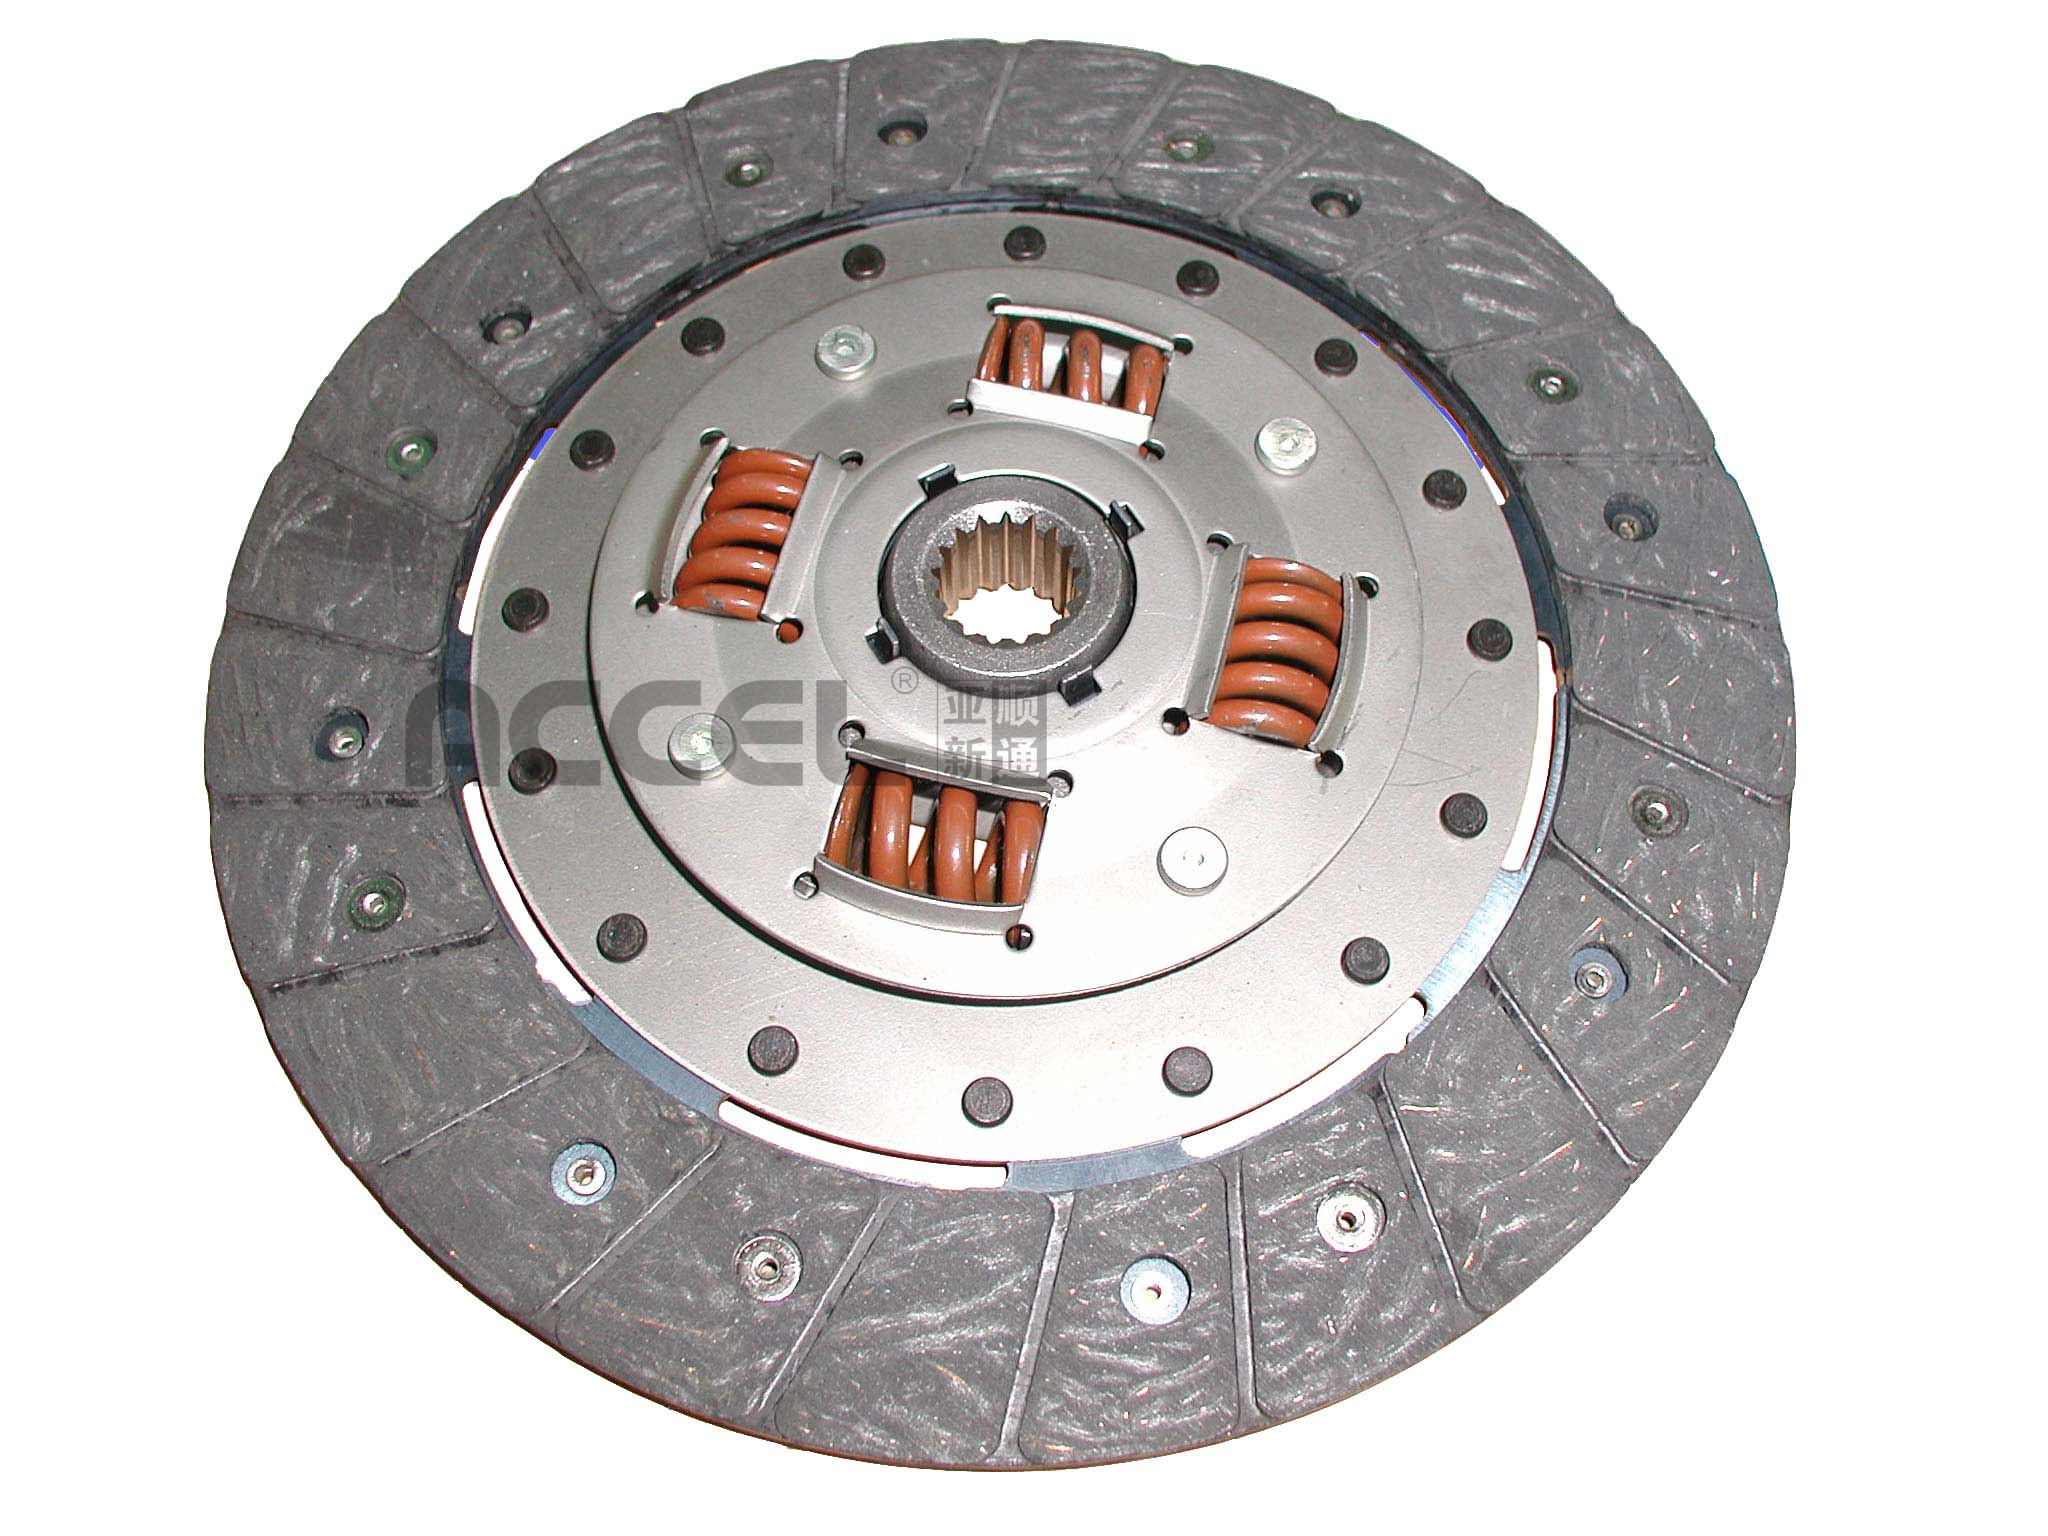 Clutch Disc/OE:1862 820 001/220*155*17*20/AFD-010/FORD/CL0586